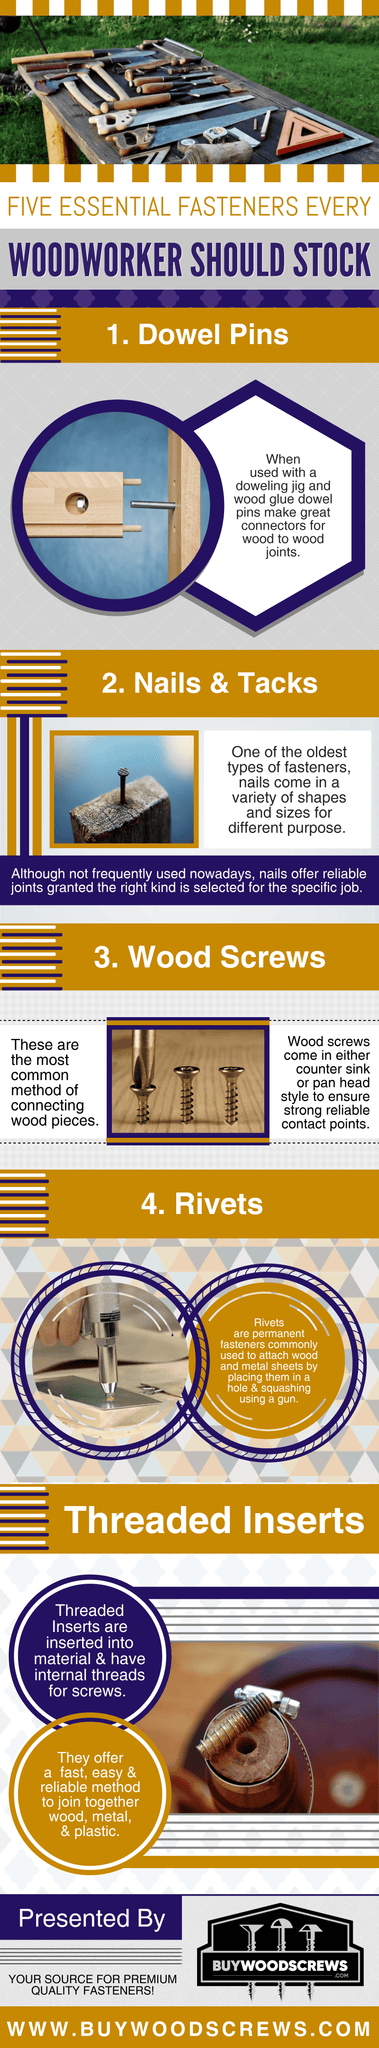 Five Essential Fasteners Every Woodworker Should Stock